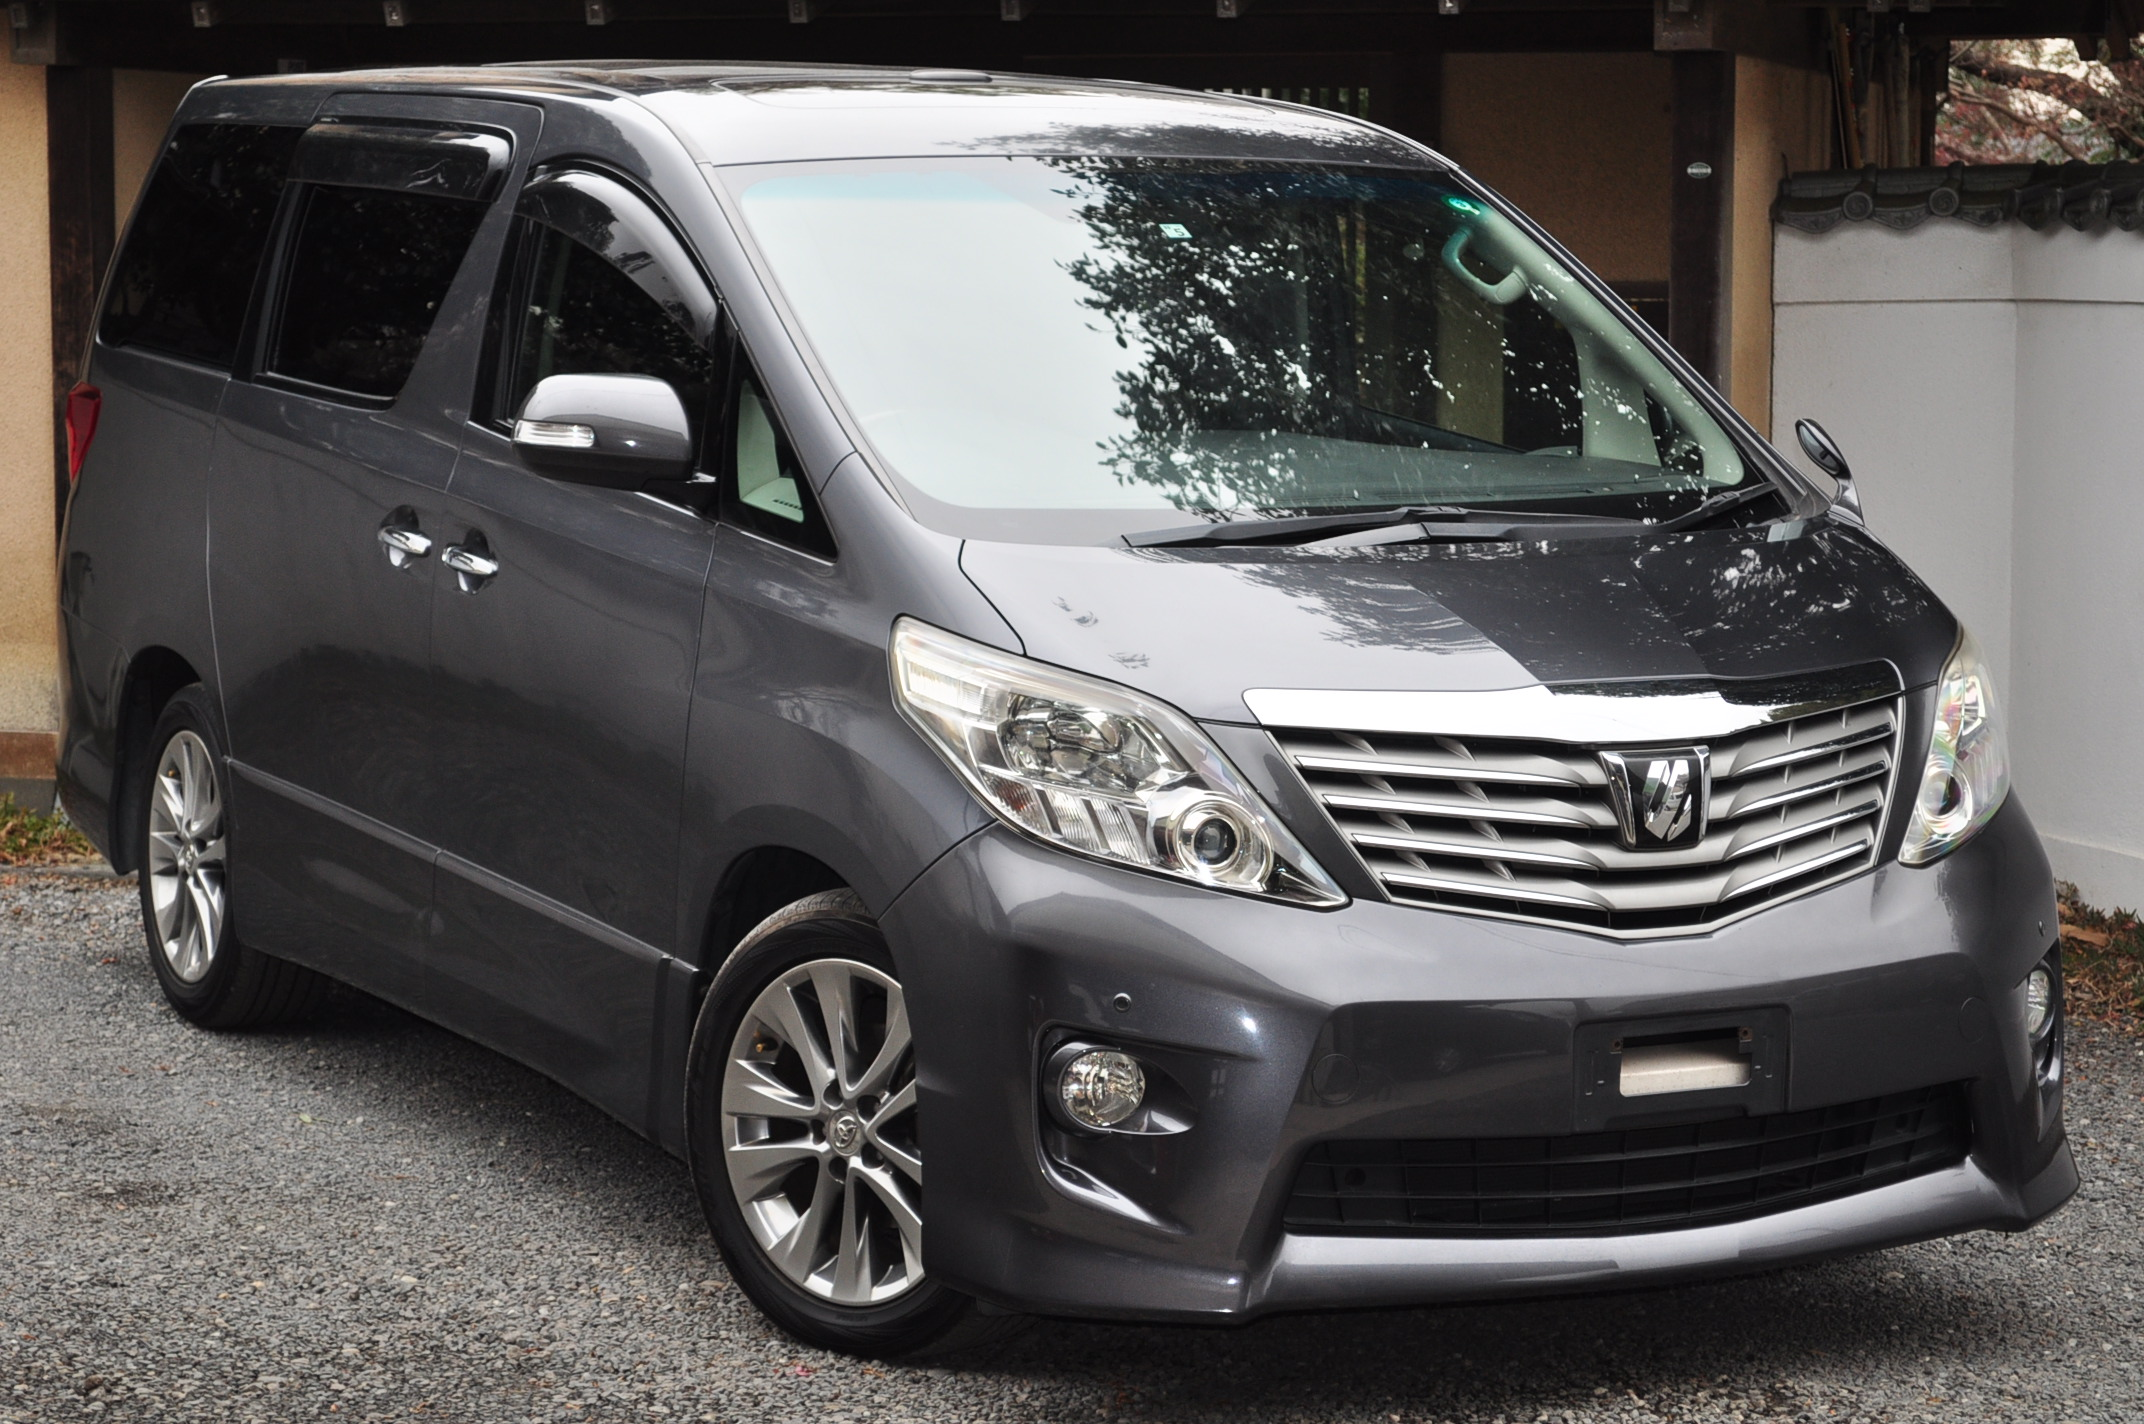 2010 (May) Toyota Alphard (ANH20) 240S Prime Selection 2 2400cc auto